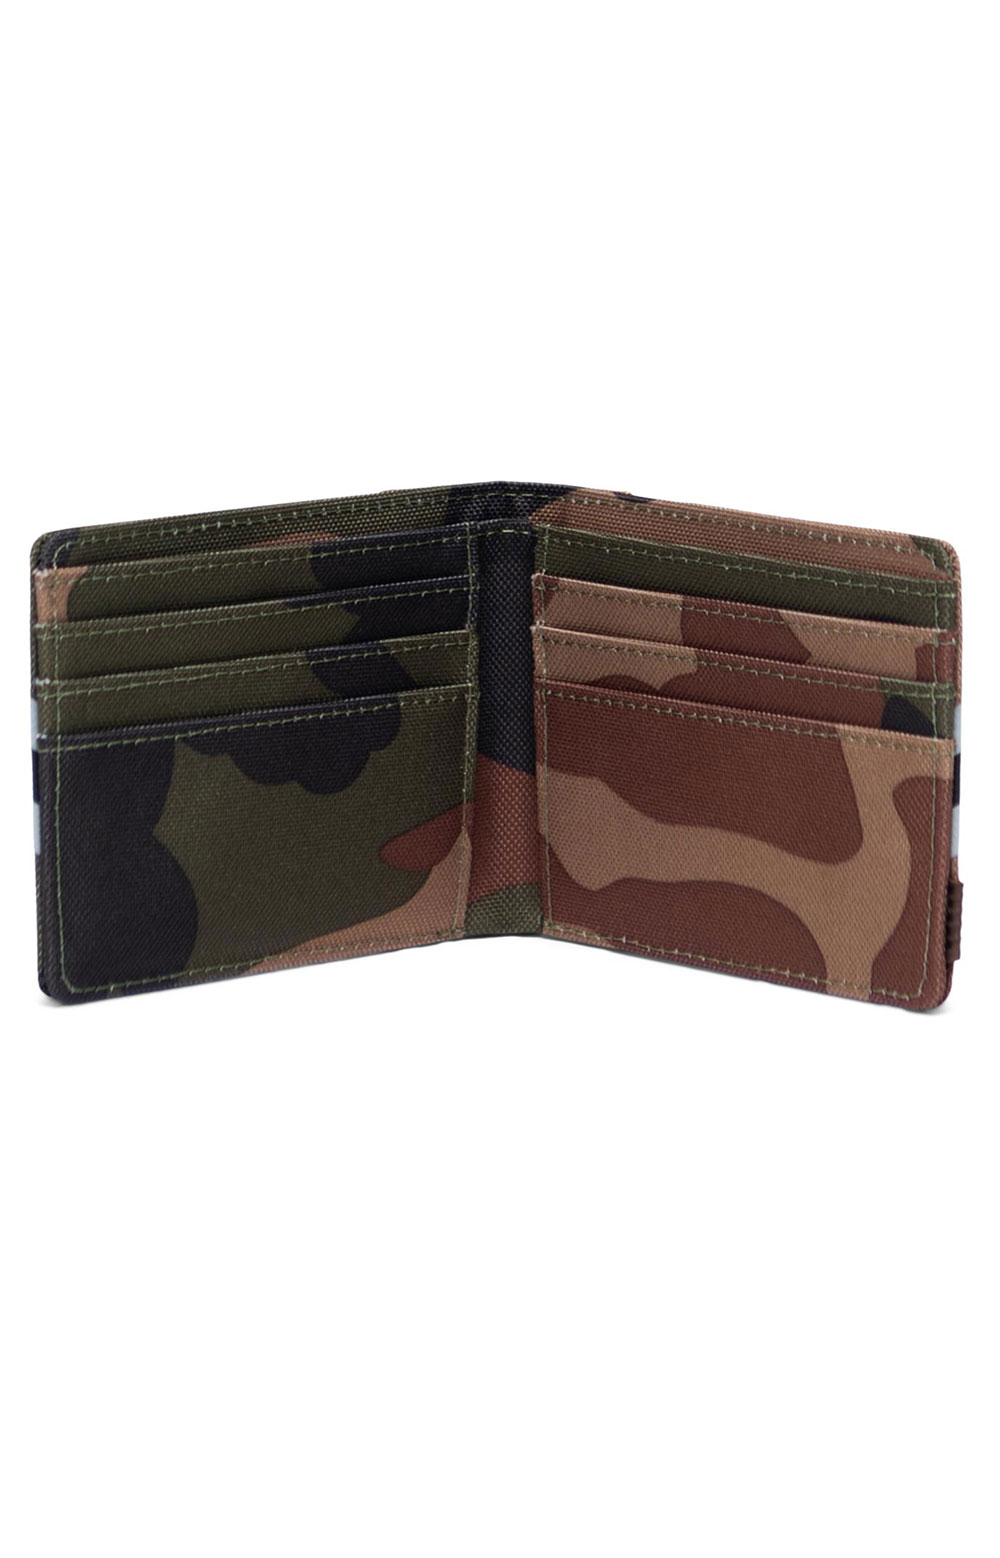 Roy Reflective Wallet - Woodland Camo/Stripe Vapor/Black 2